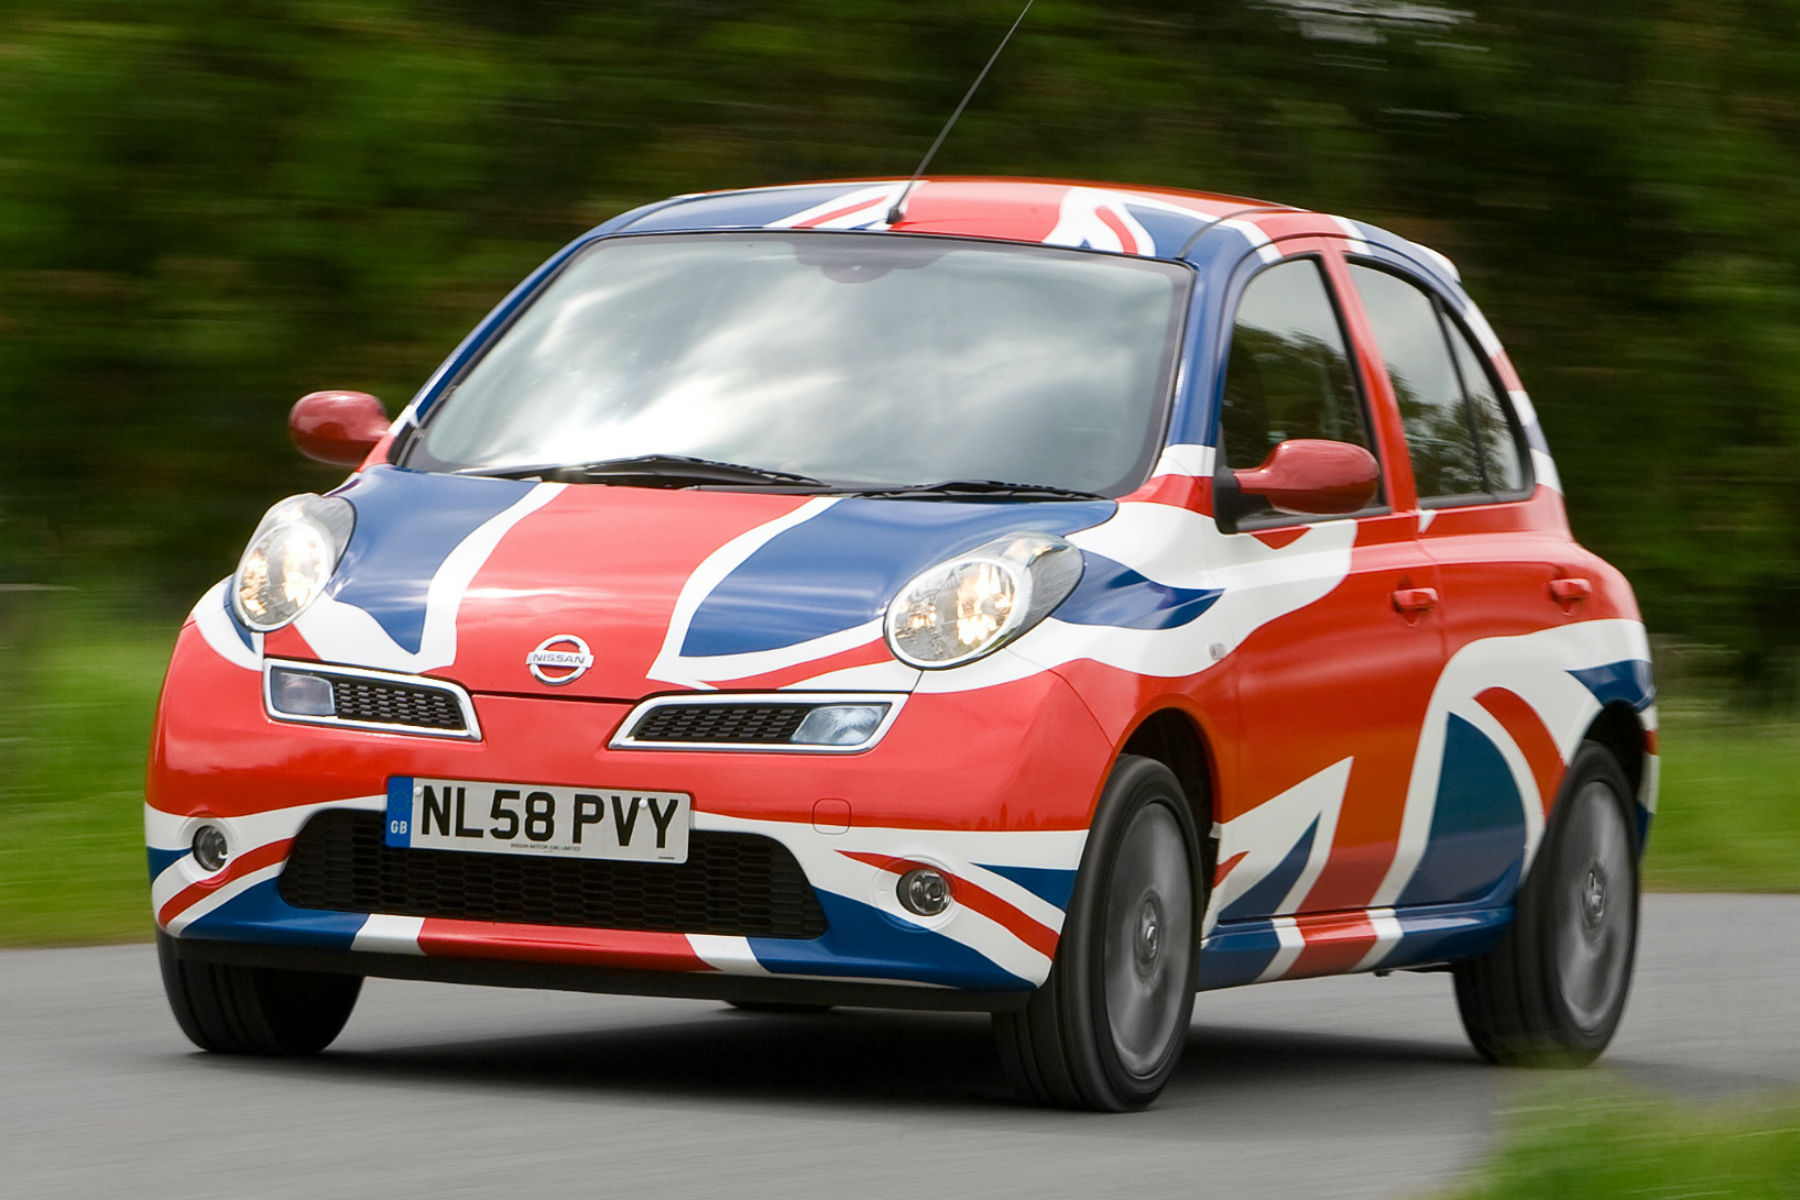 Blog: should carmakers have done more to prevent a Brexit?